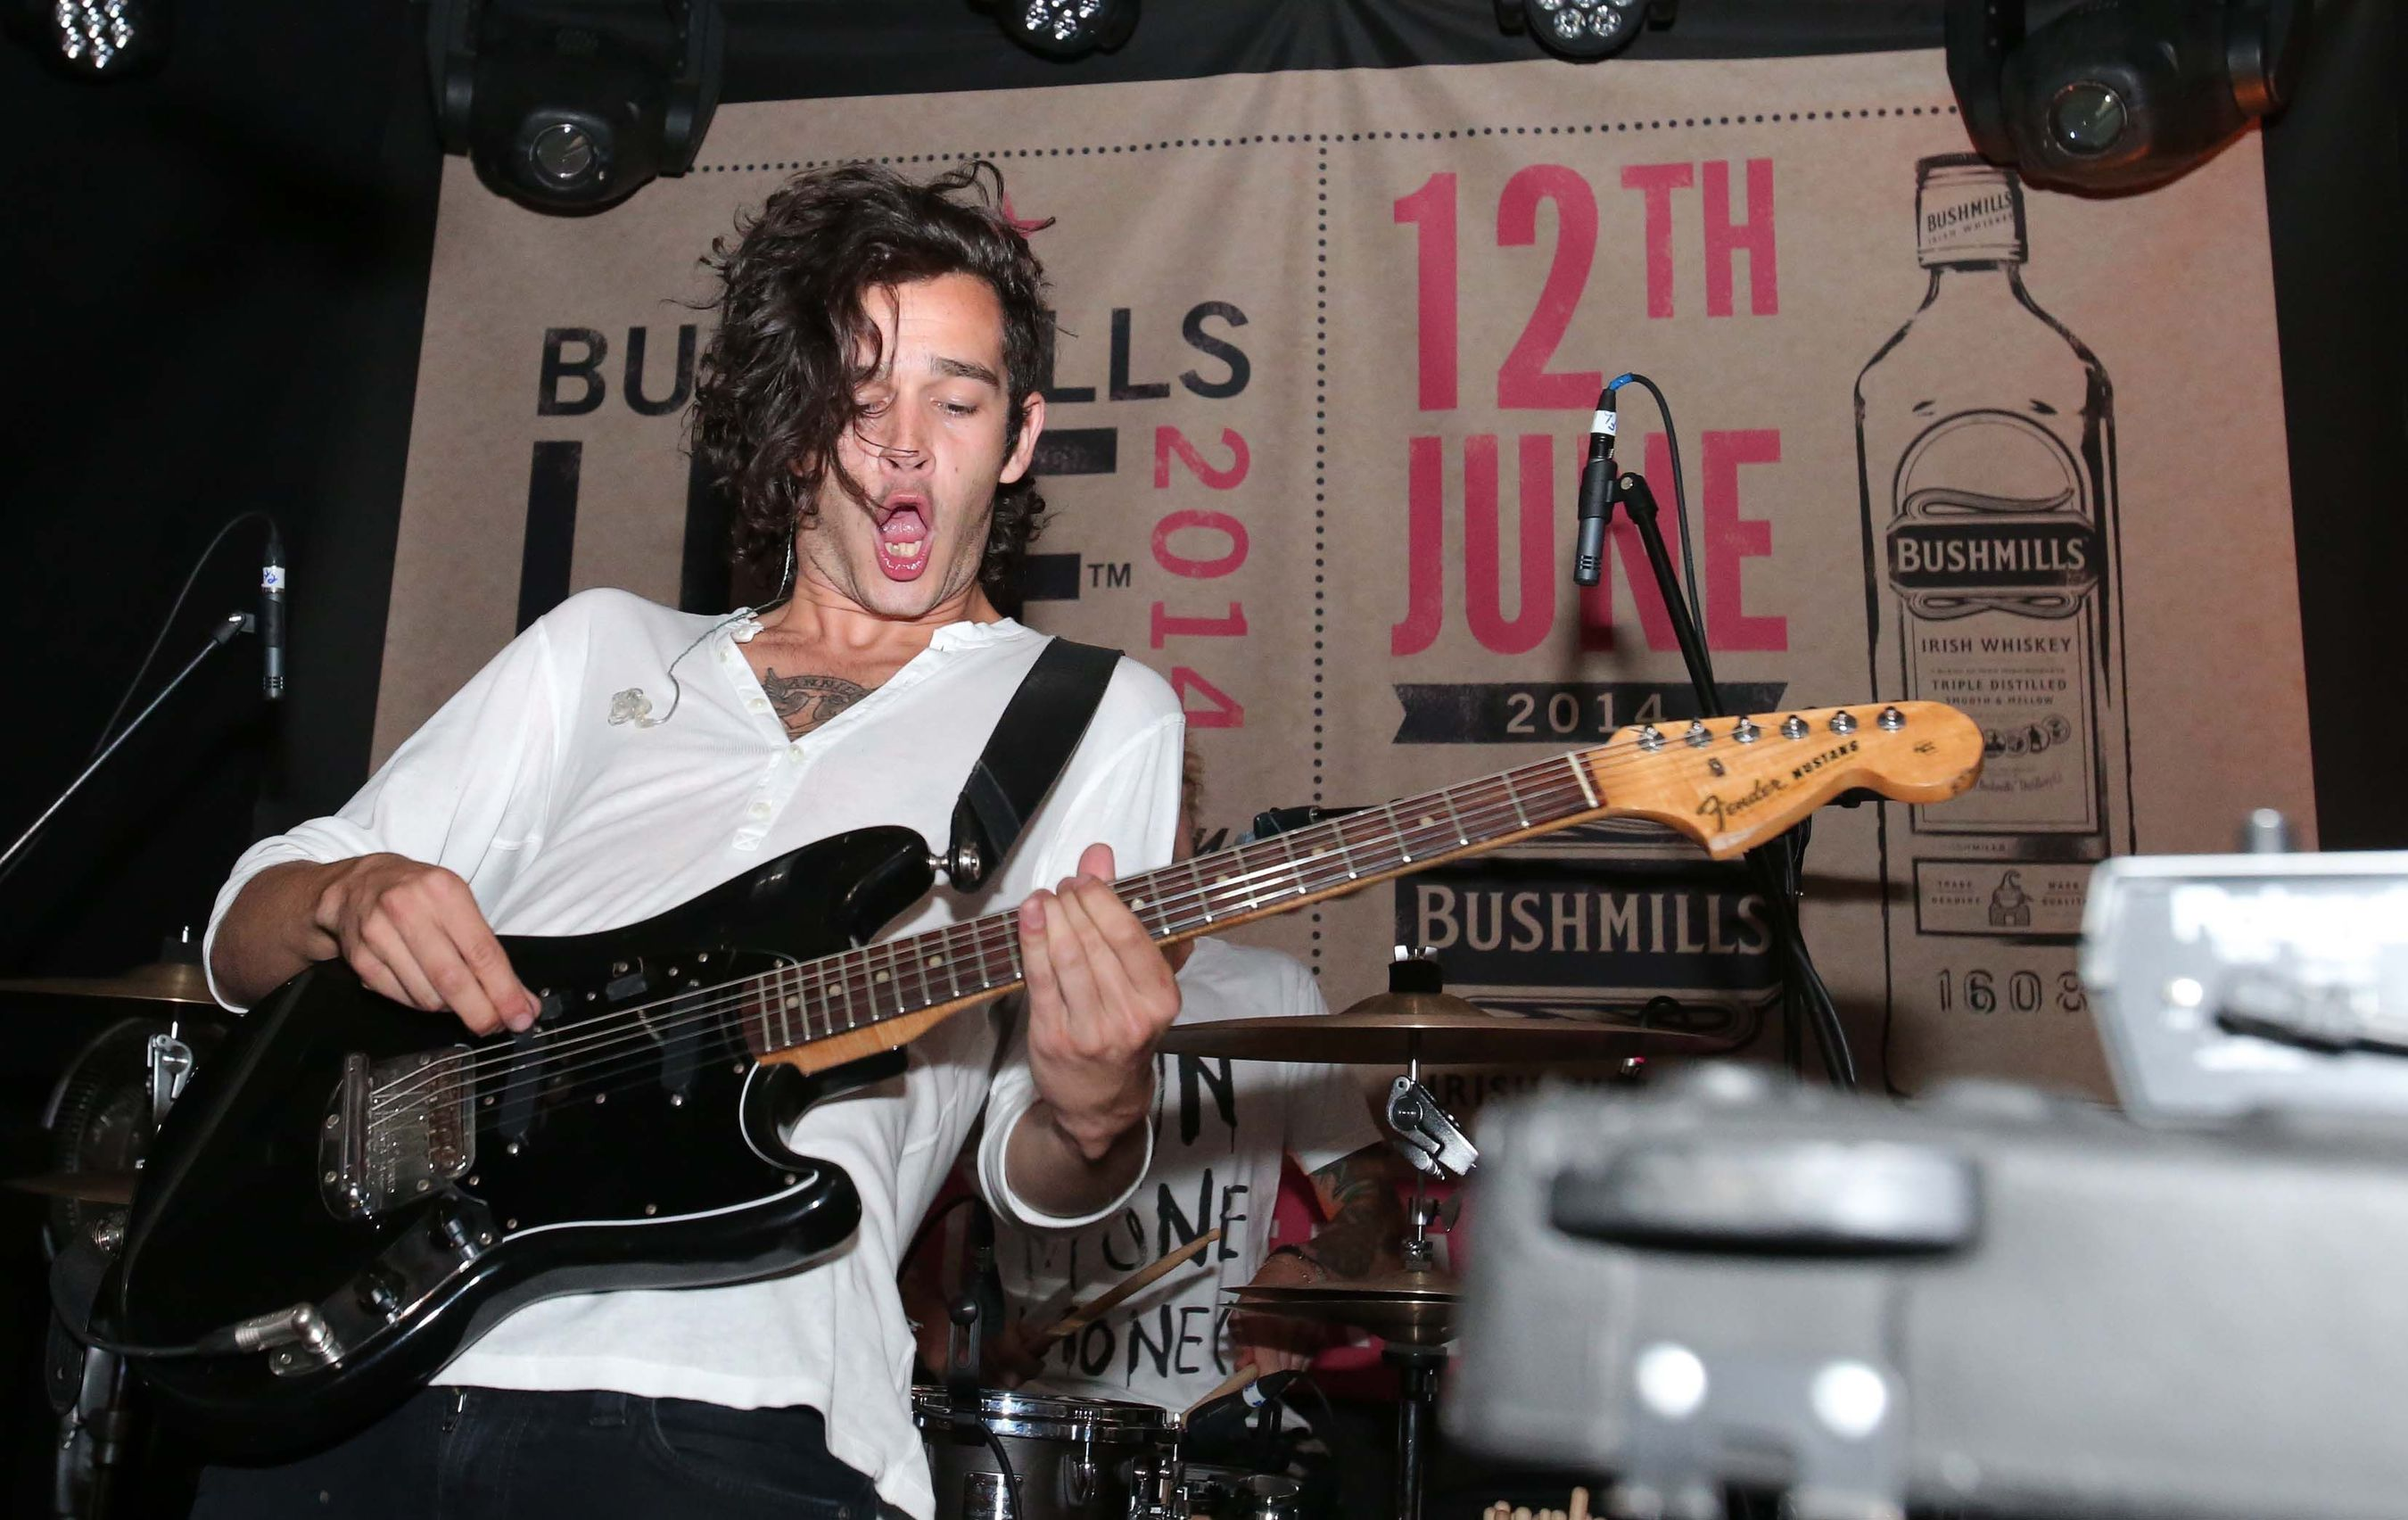 British breakthrough act THE 1975 wow the audience at Bushmills Live 2014, the festival of handcrafted whiskey and music that took place yesterday (Thursday 12th June) at the Old Bushmills Distillery on Ireland's north coast. The intimate festival was attended by 700 music and whiskey fans from around the globe with bands including Gary Lightbody and Peter Buck's supergroup TIRED PONY also on the bill. Artists more used to playing to crowds of thousands performed a series of small gigs in centuries-old buildings at the Old Bushmills Distillery where the art of whiskey-making, perfected over generations, is practised every day. (PRNewsFoto/Bushmills Irish Whiskey)